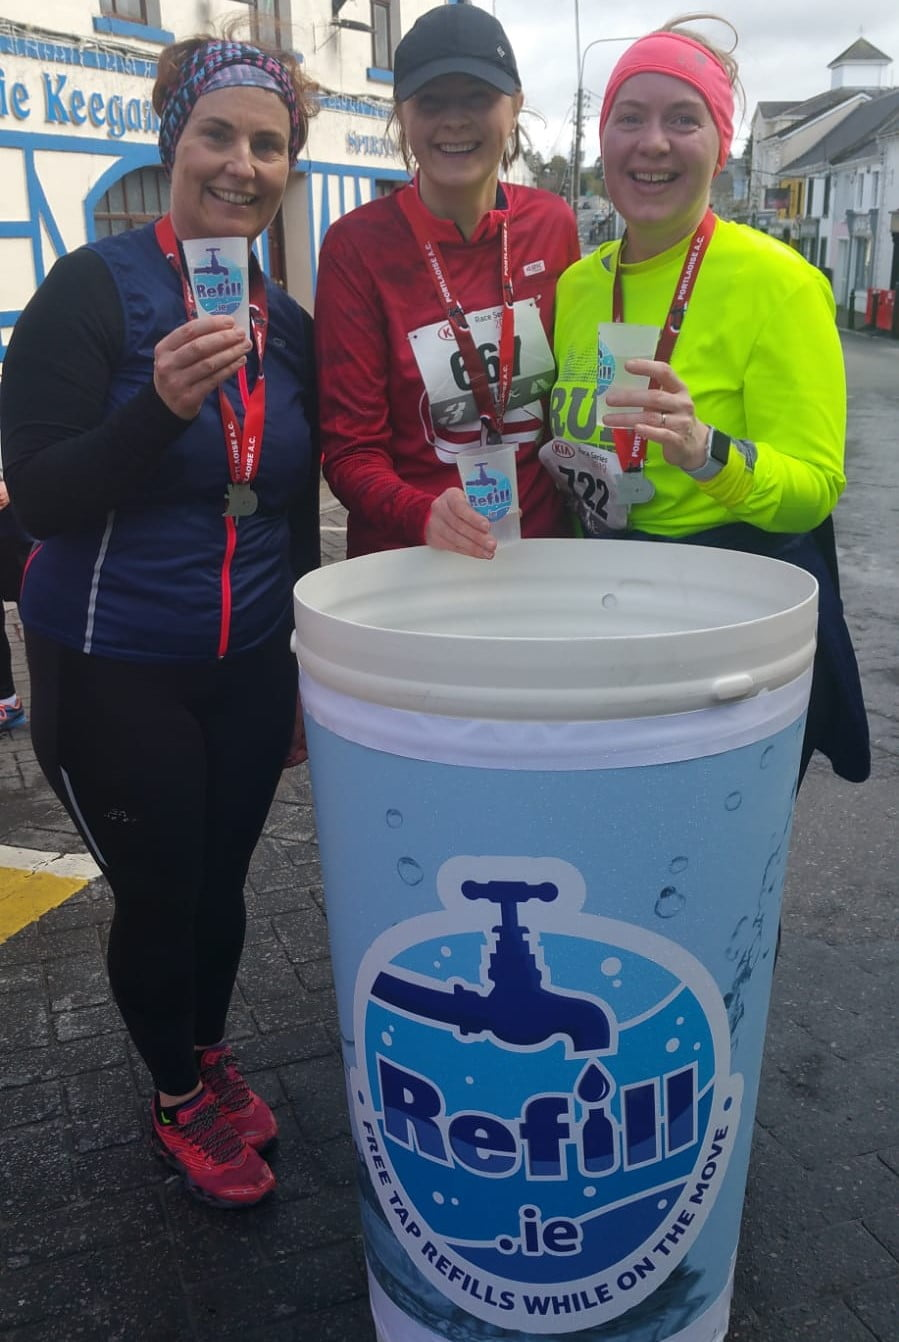 Refill.ie bin for used reusable water cups at 10k race event